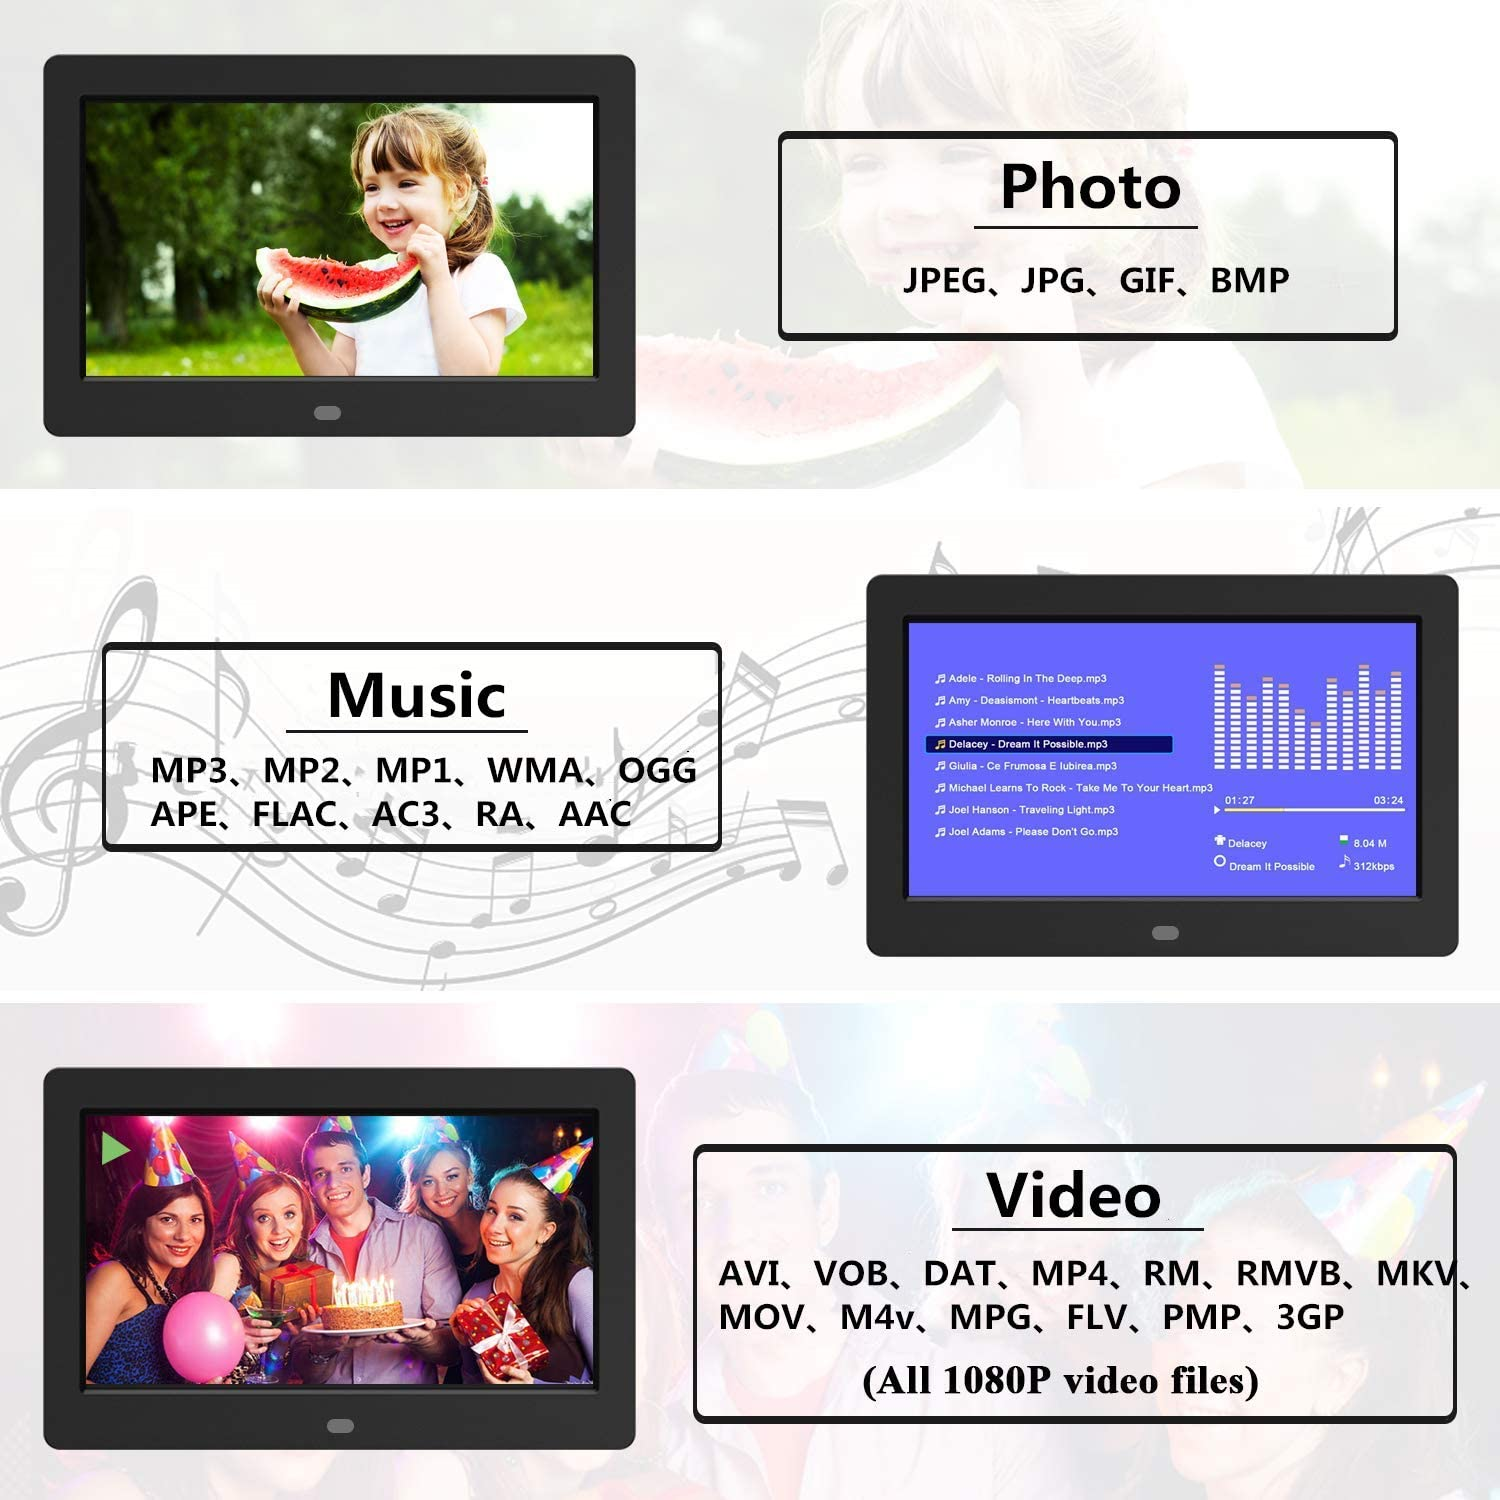 Digital Photo Frame 32GB SD Card 7 Inch 1024x600 High Resolution IPS Display Digital Picture Frames Auto-Rotate Image Preview Background Music Video Calendar with Remote Control